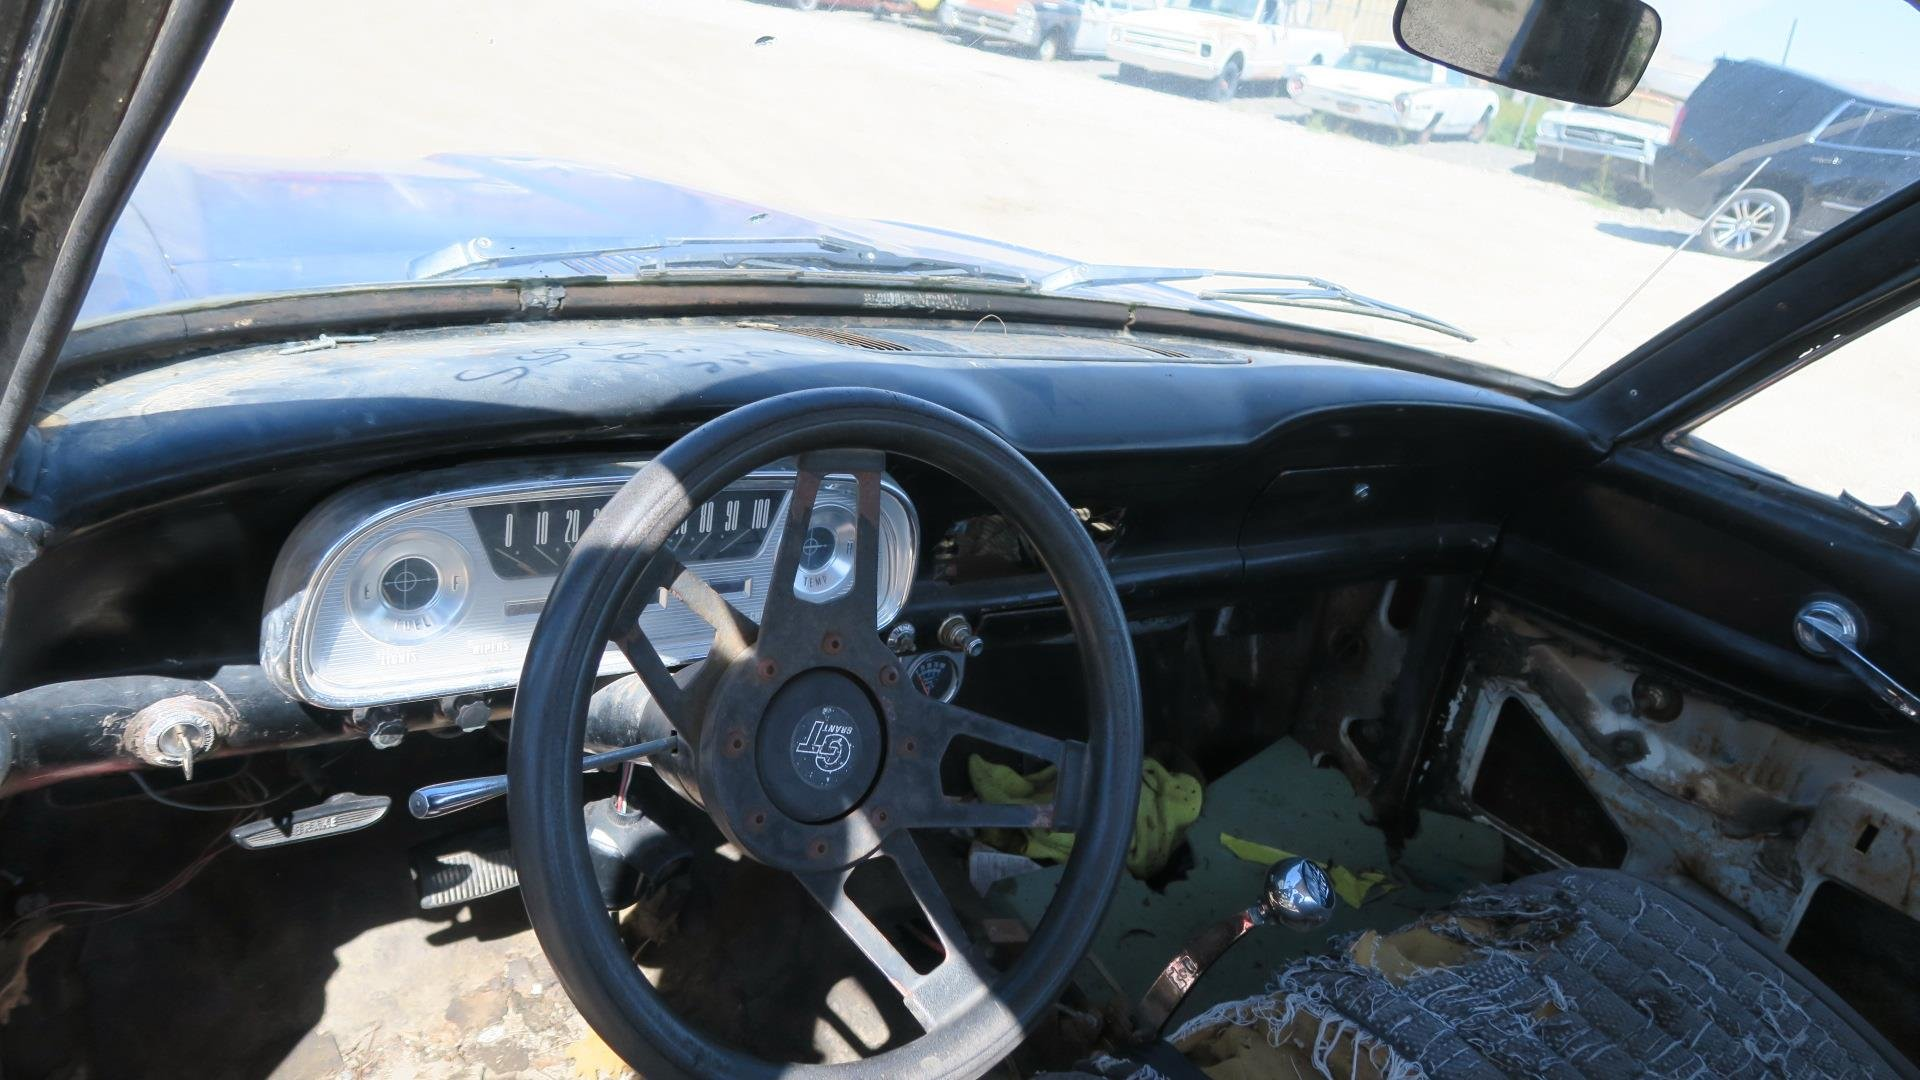 1961 Ford Ranchero Car(~)Truck 289 AT Cali Project $2.9k For Sale (picture 4 of 6)